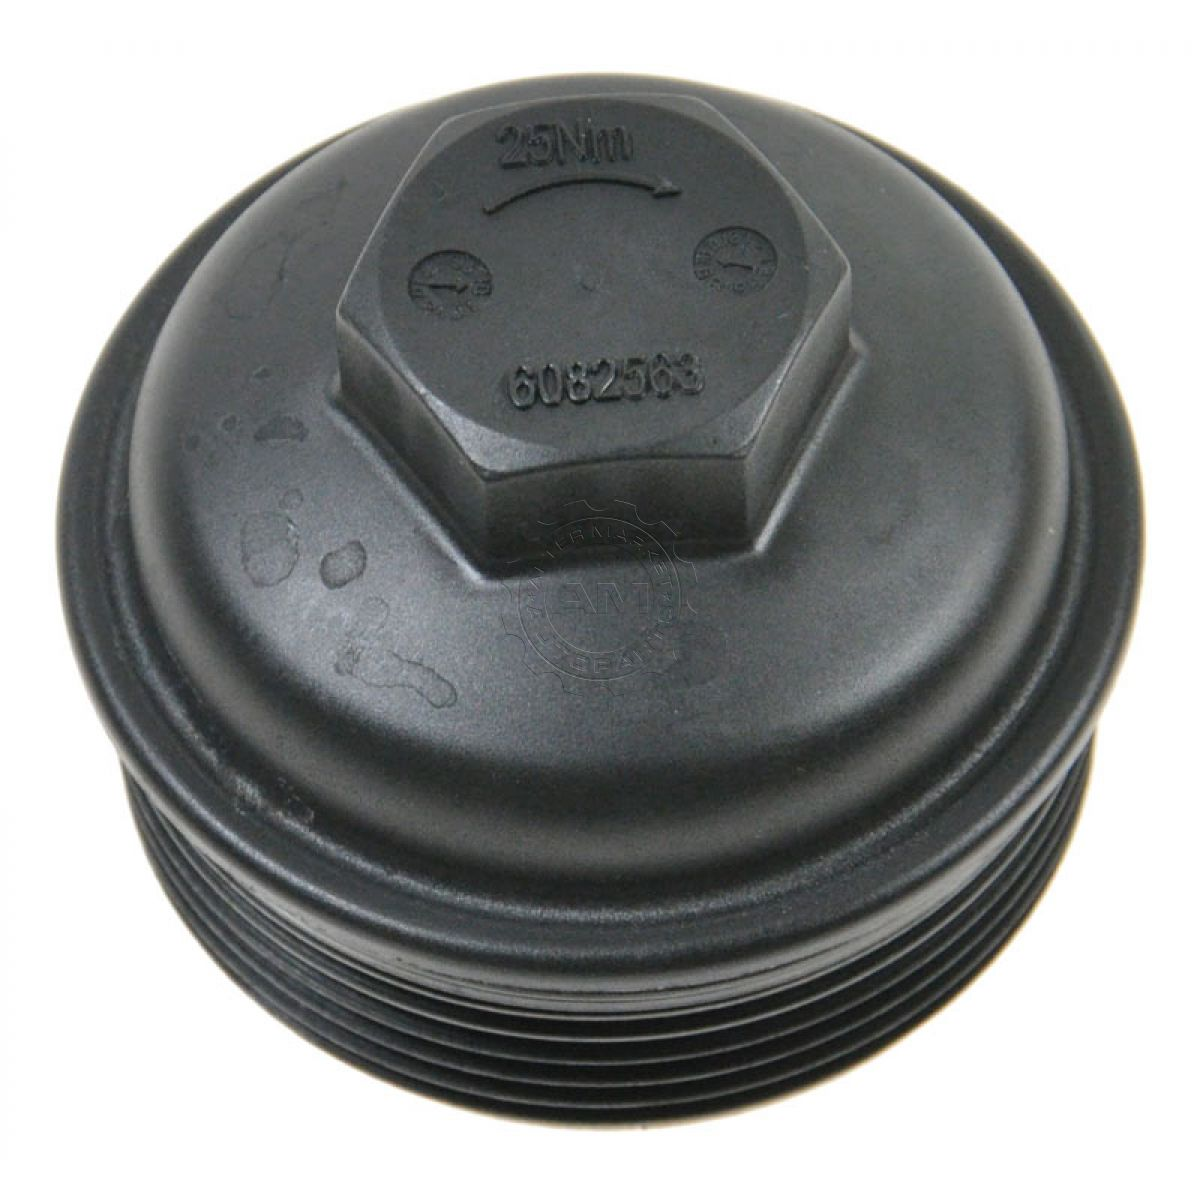 dorman oil filter housing cap cover for cobalt vue grand. Black Bedroom Furniture Sets. Home Design Ideas